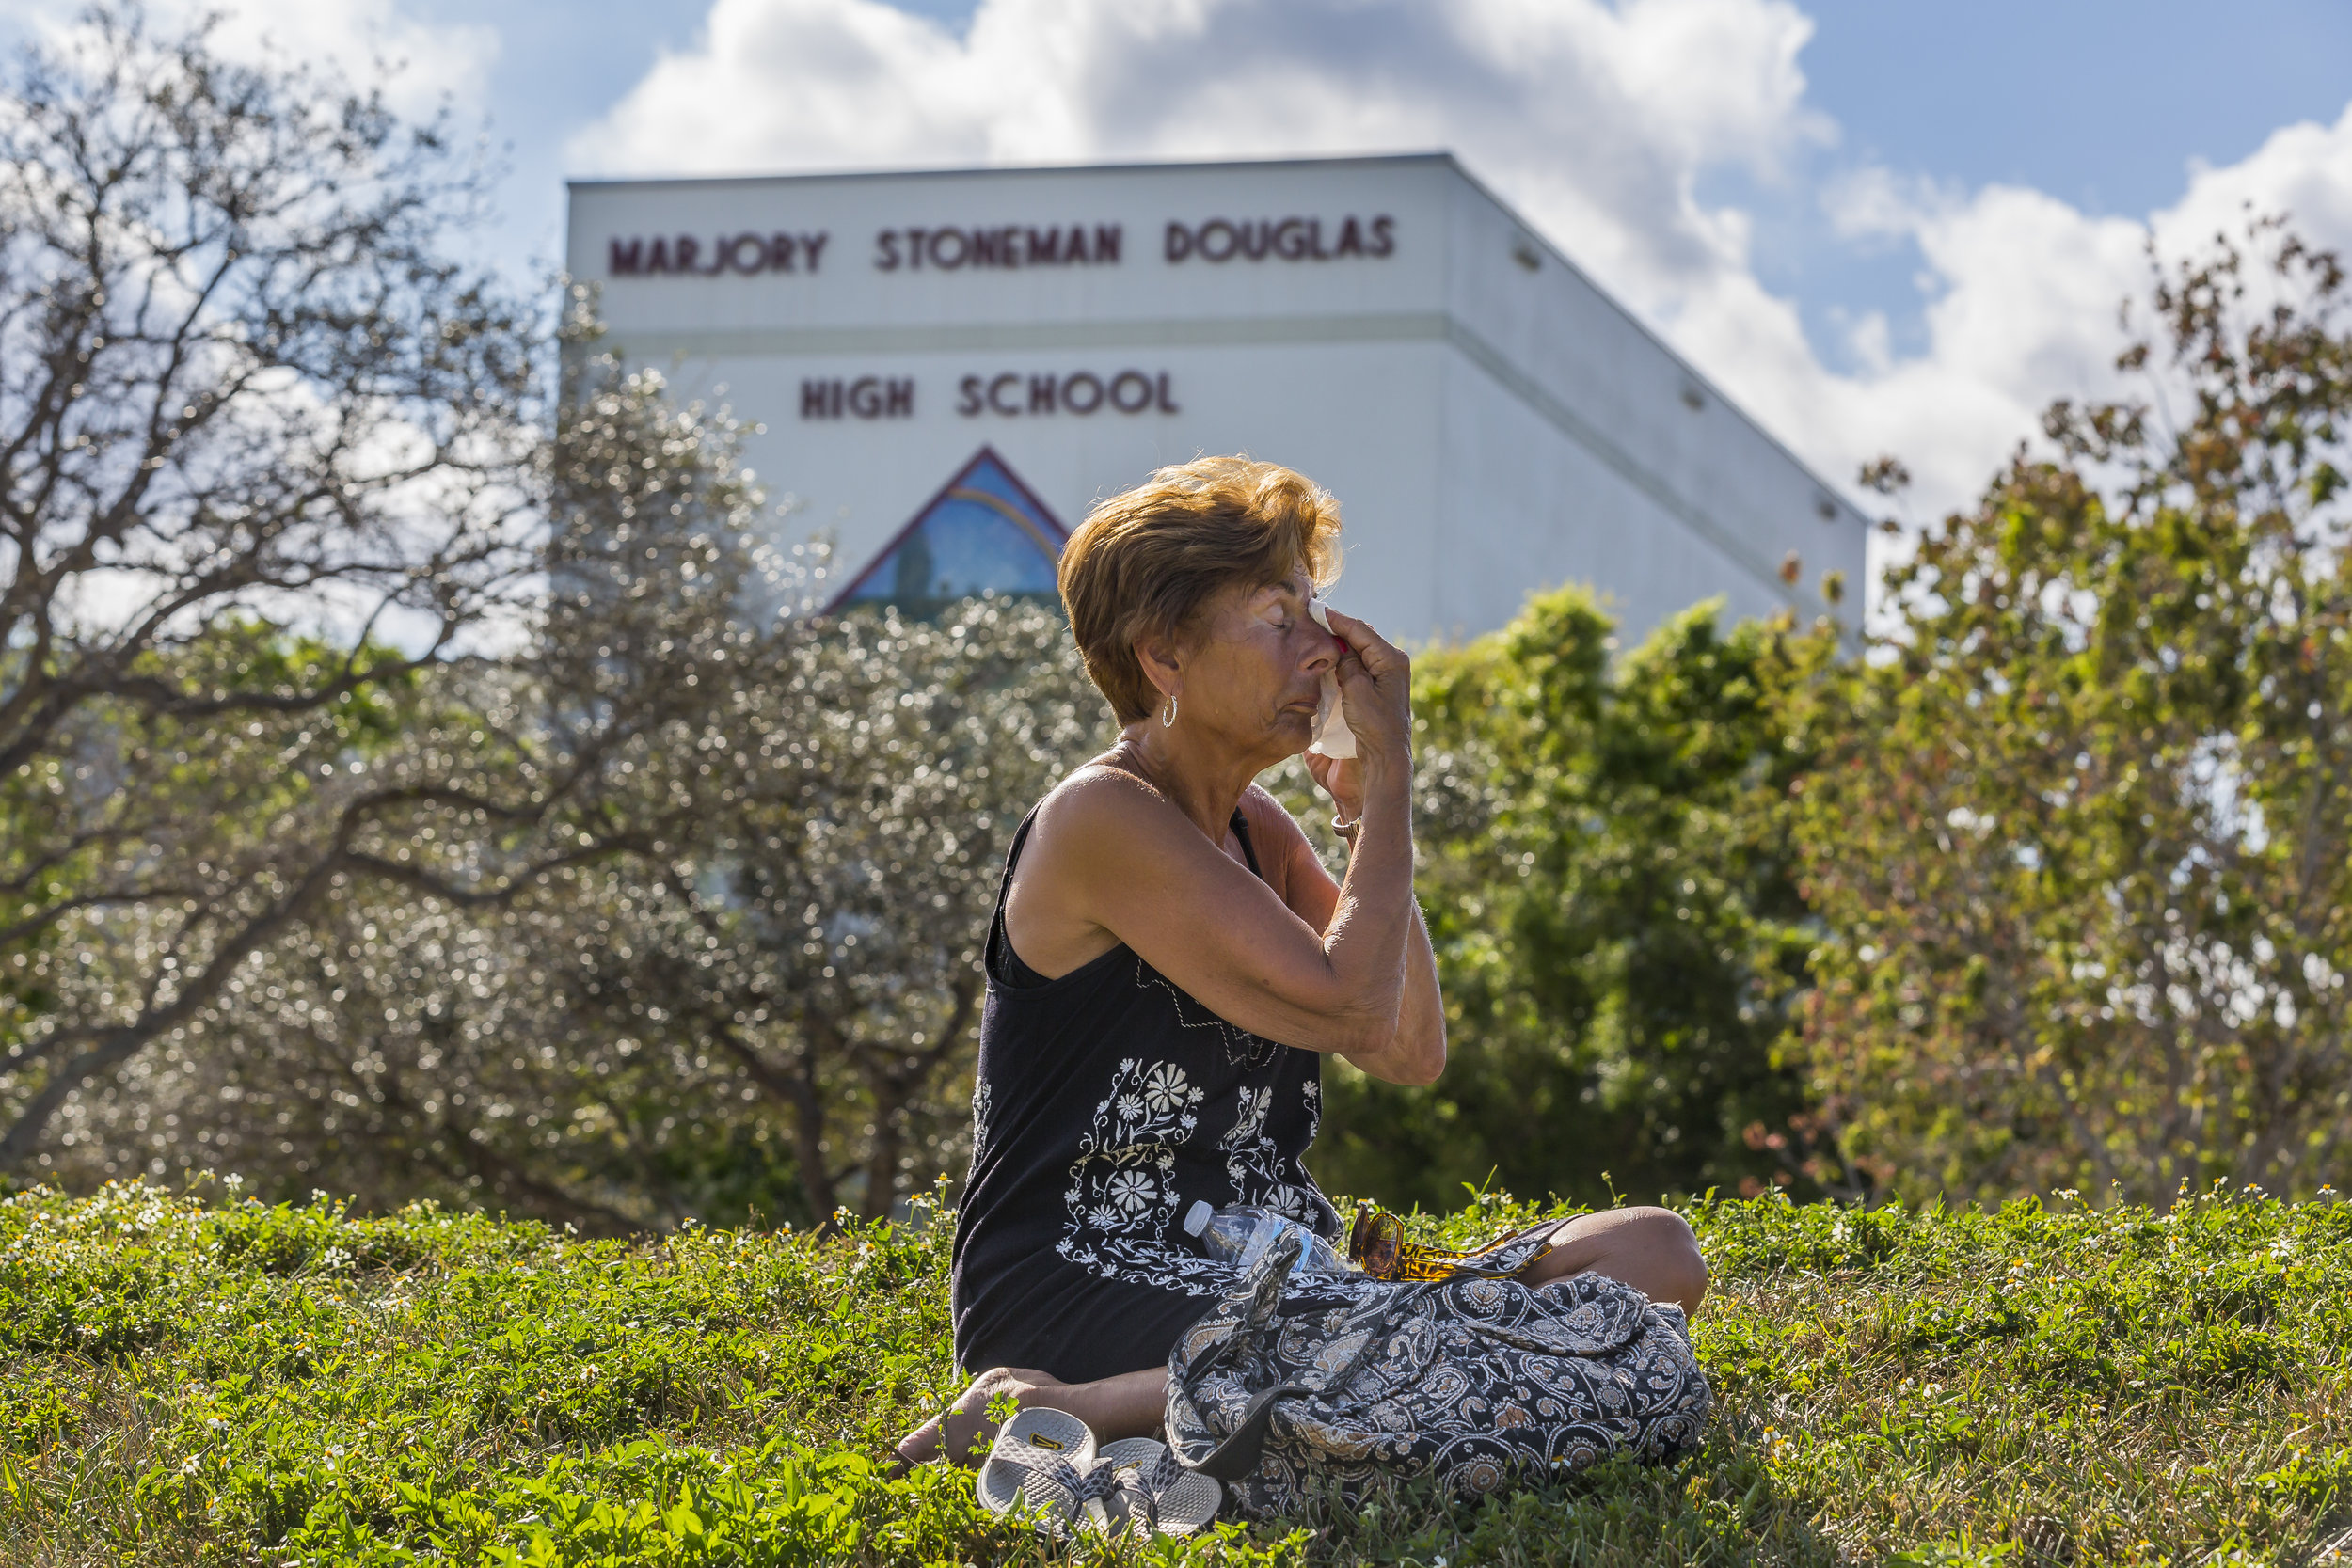 Diane Cappelli wipes tears as she mourns in front of Marjory Stoneman Douglas High School in Parkland, Florida on Sunday, February 18, 2018. A gunman entered the school and killed 14 students and 3 teachers.